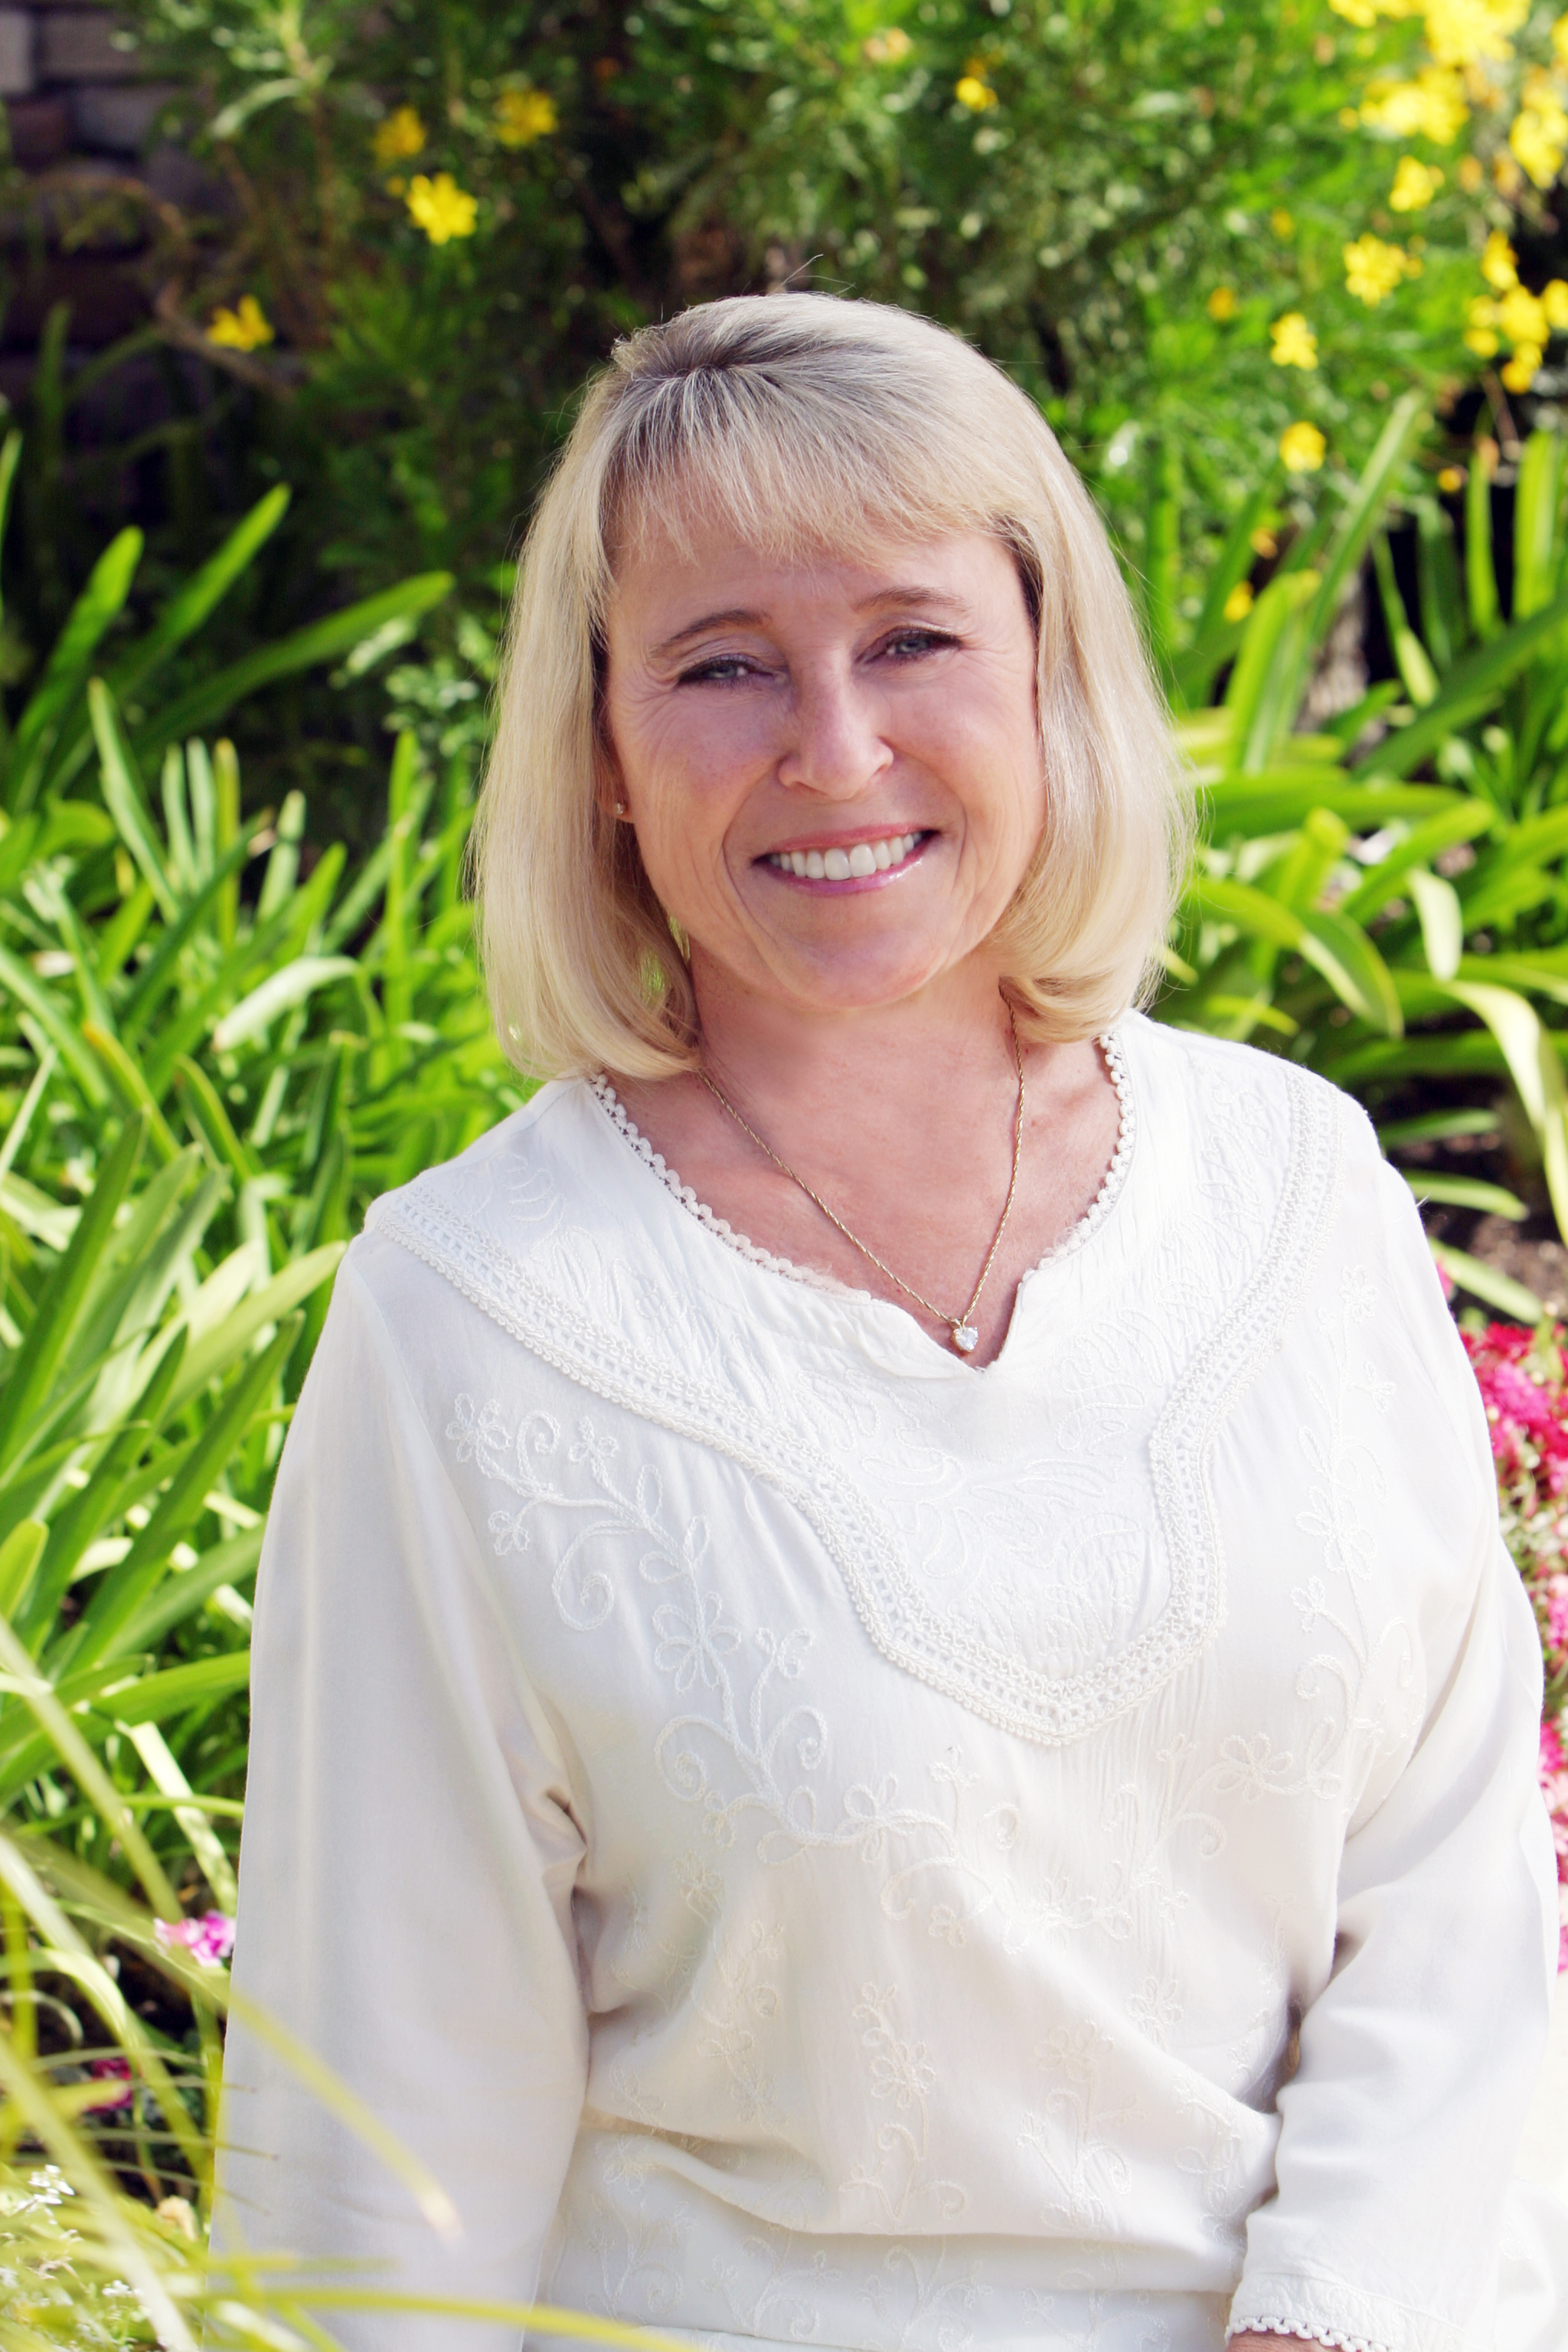 Dr. Terrie